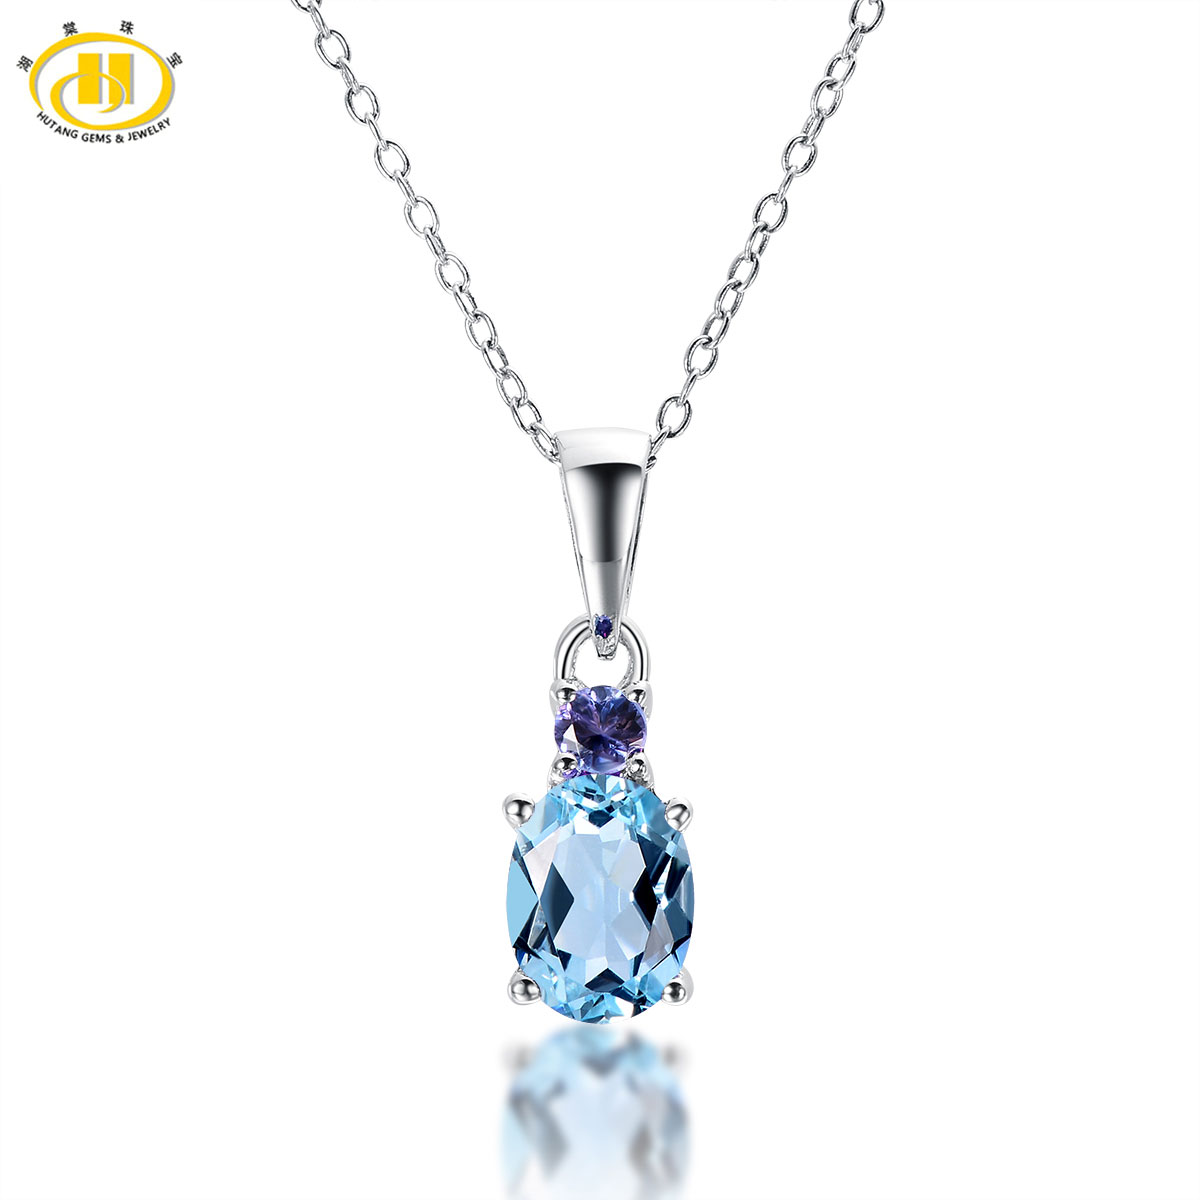 Hutang Natural Blue Topaz & Tanzanite Solid 925 Sterling Silver Pendant Necklace Gemstone Fine Jewelry Women's